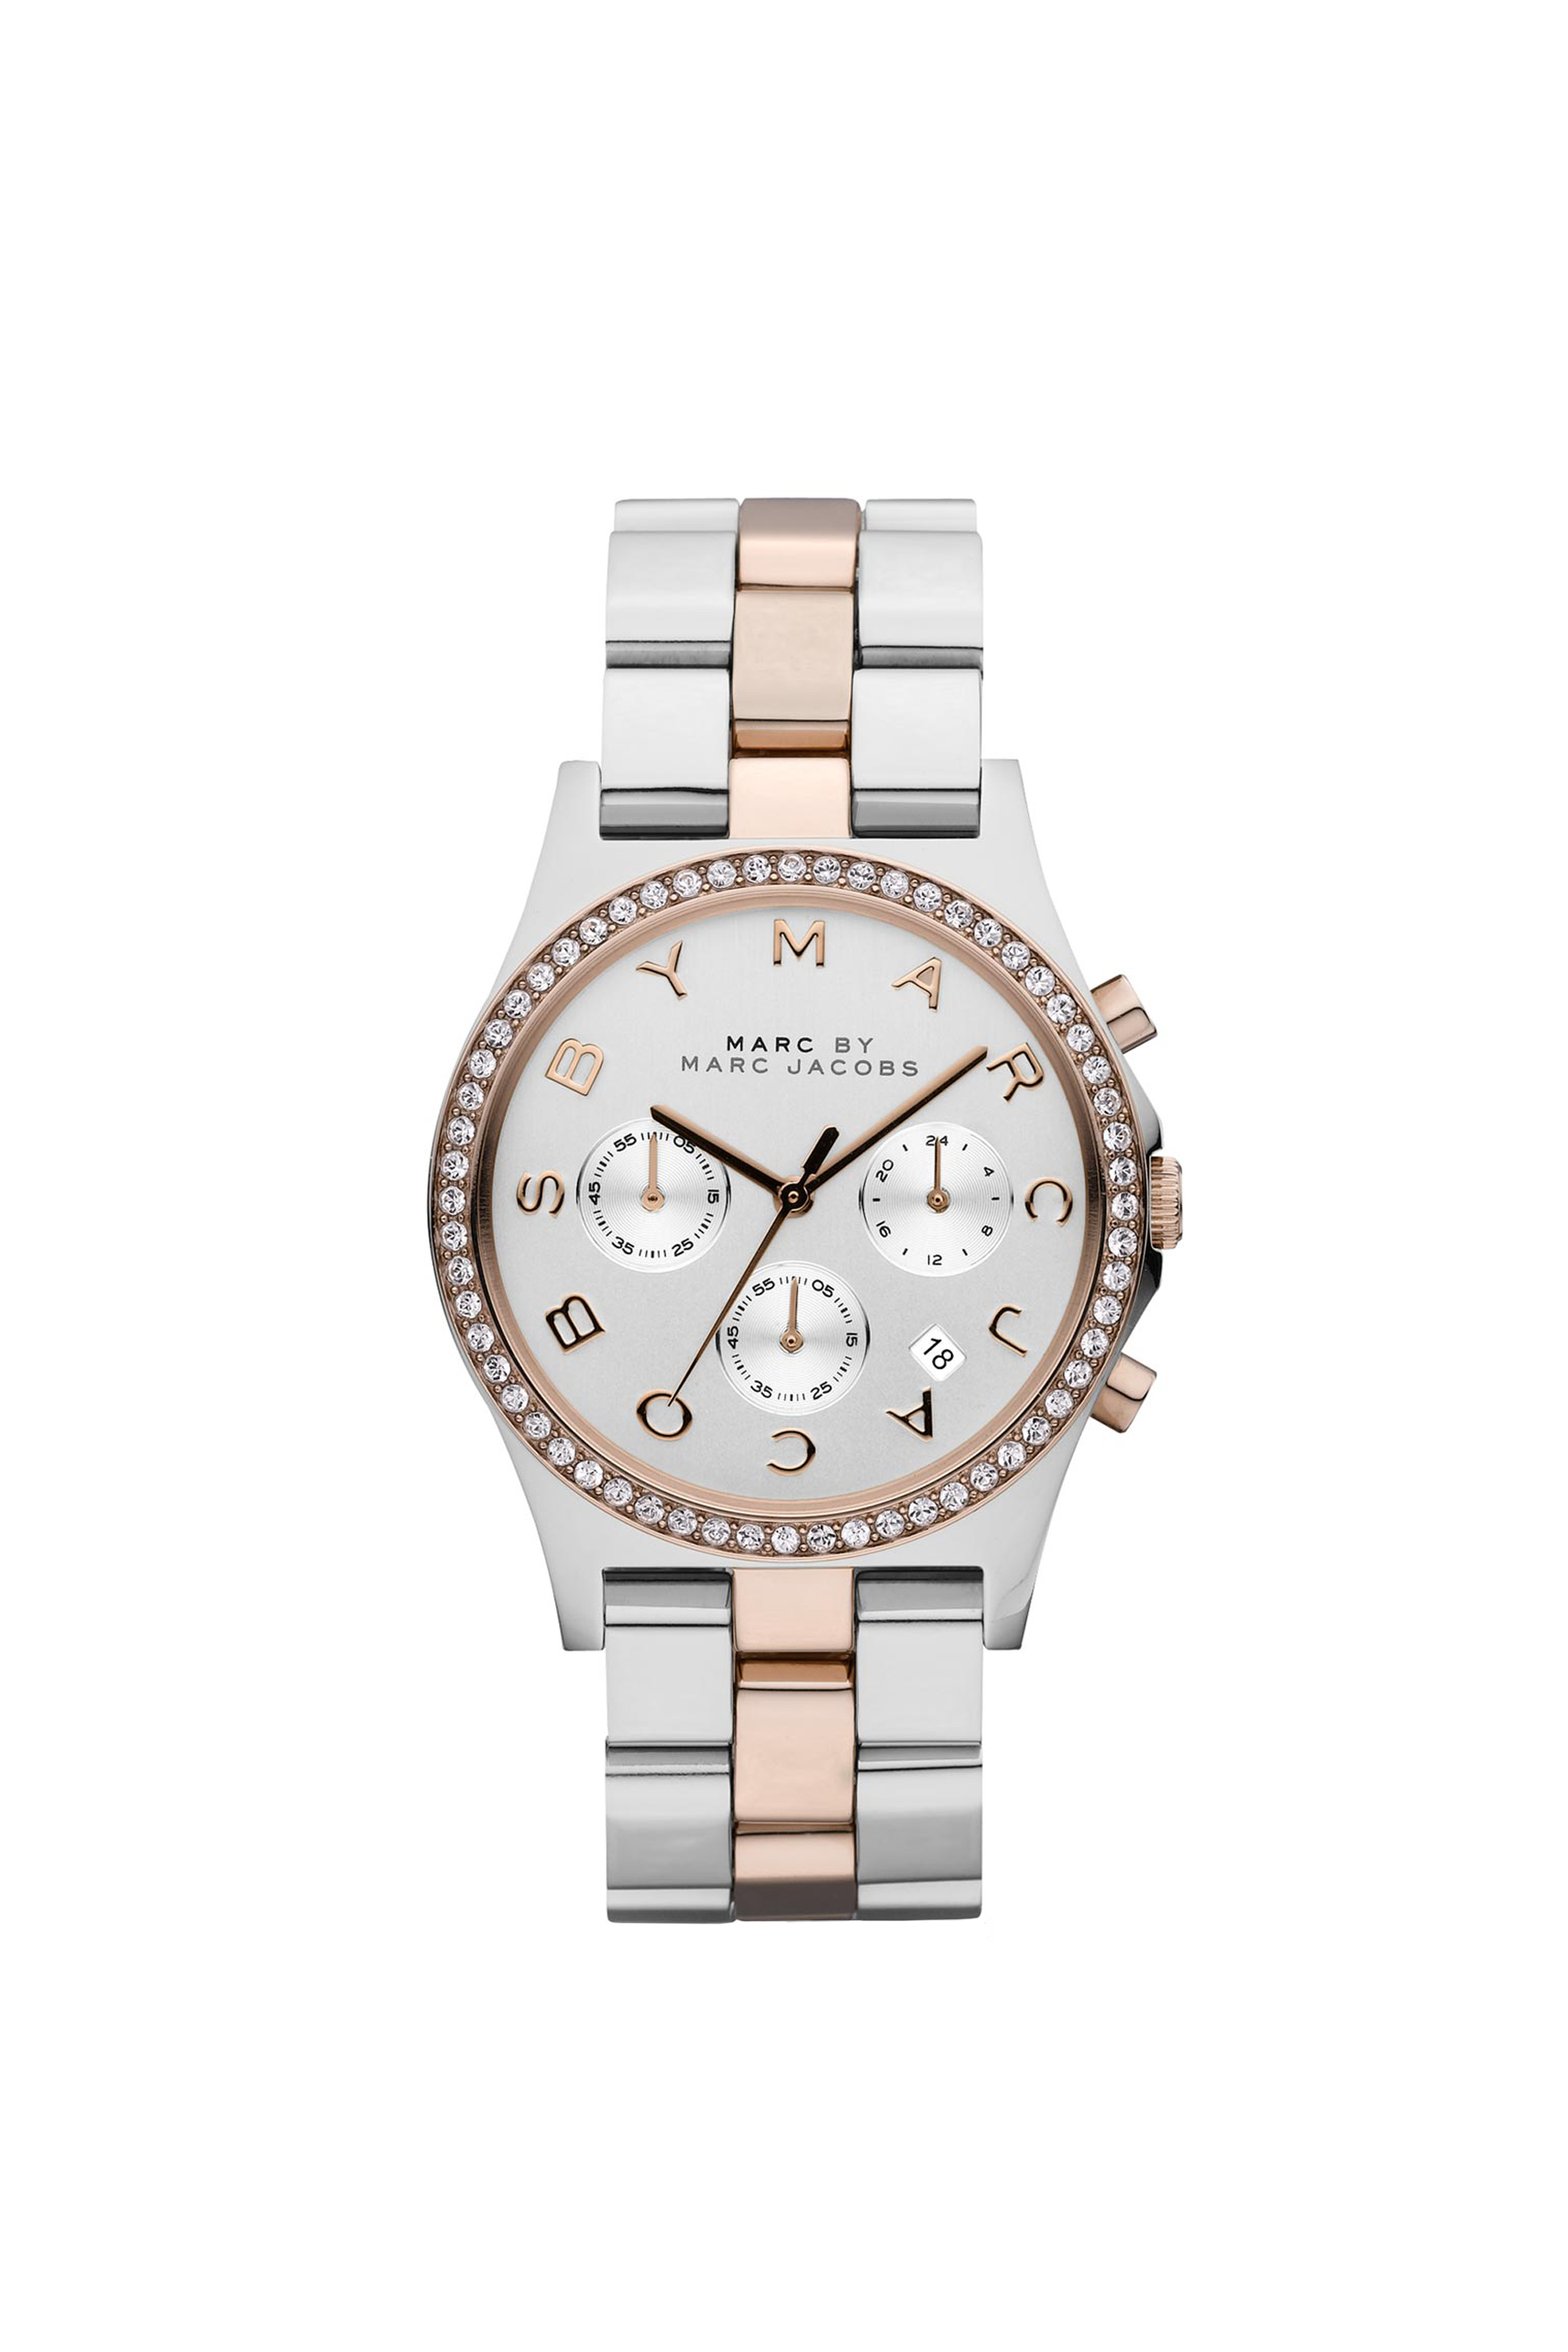 Henry Chrono 40MM - Watches - Shop marcjacobs.com - Marc Jacobs